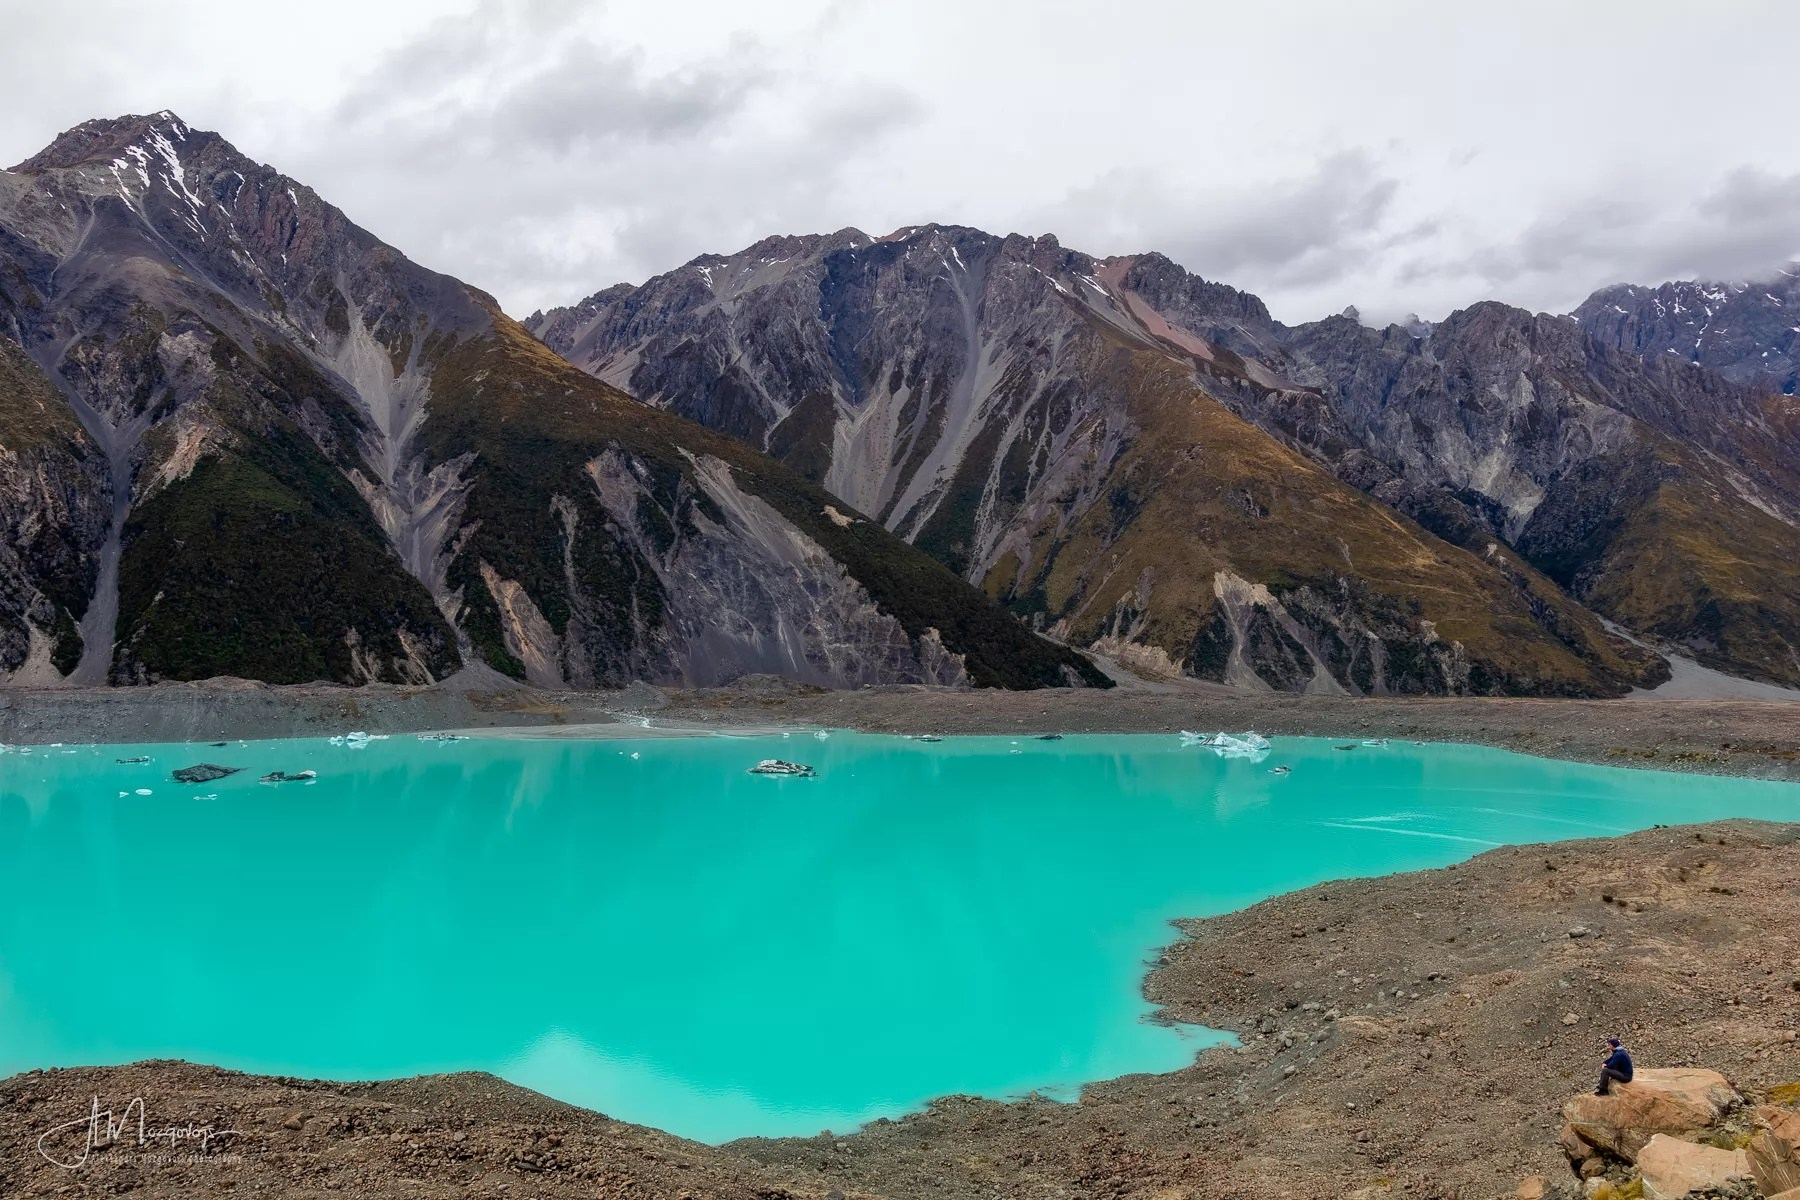 Amazing turquoise water of Tasman Lake